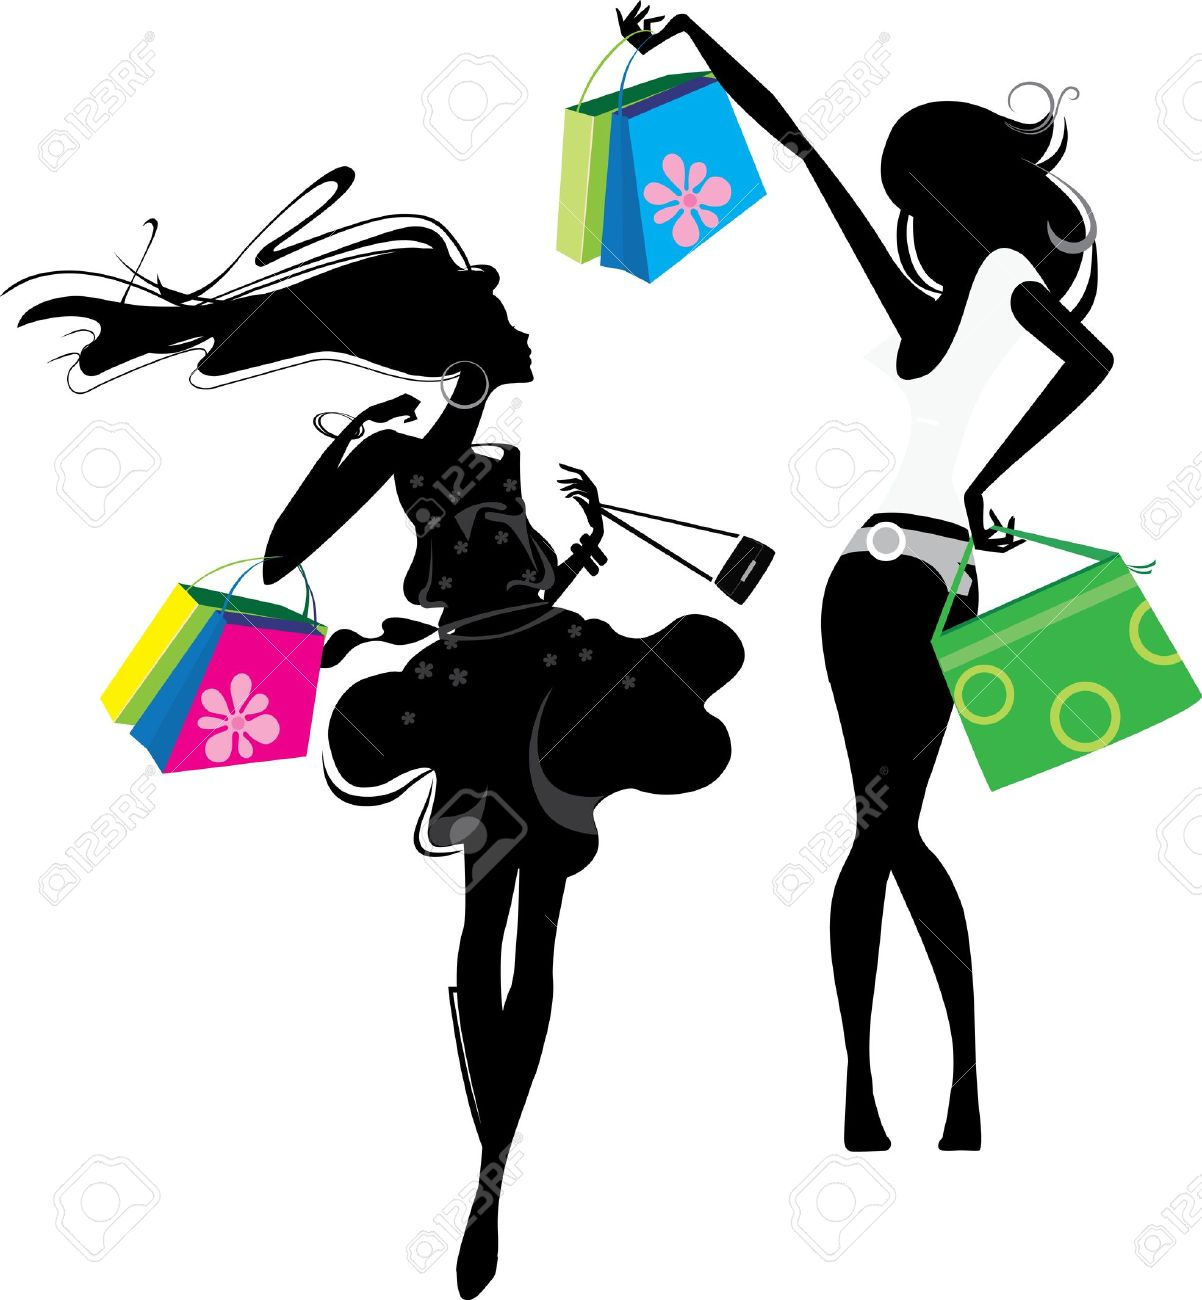 Beautiful Girl With Shoping Bsgs Stock Image - Image: 21163871